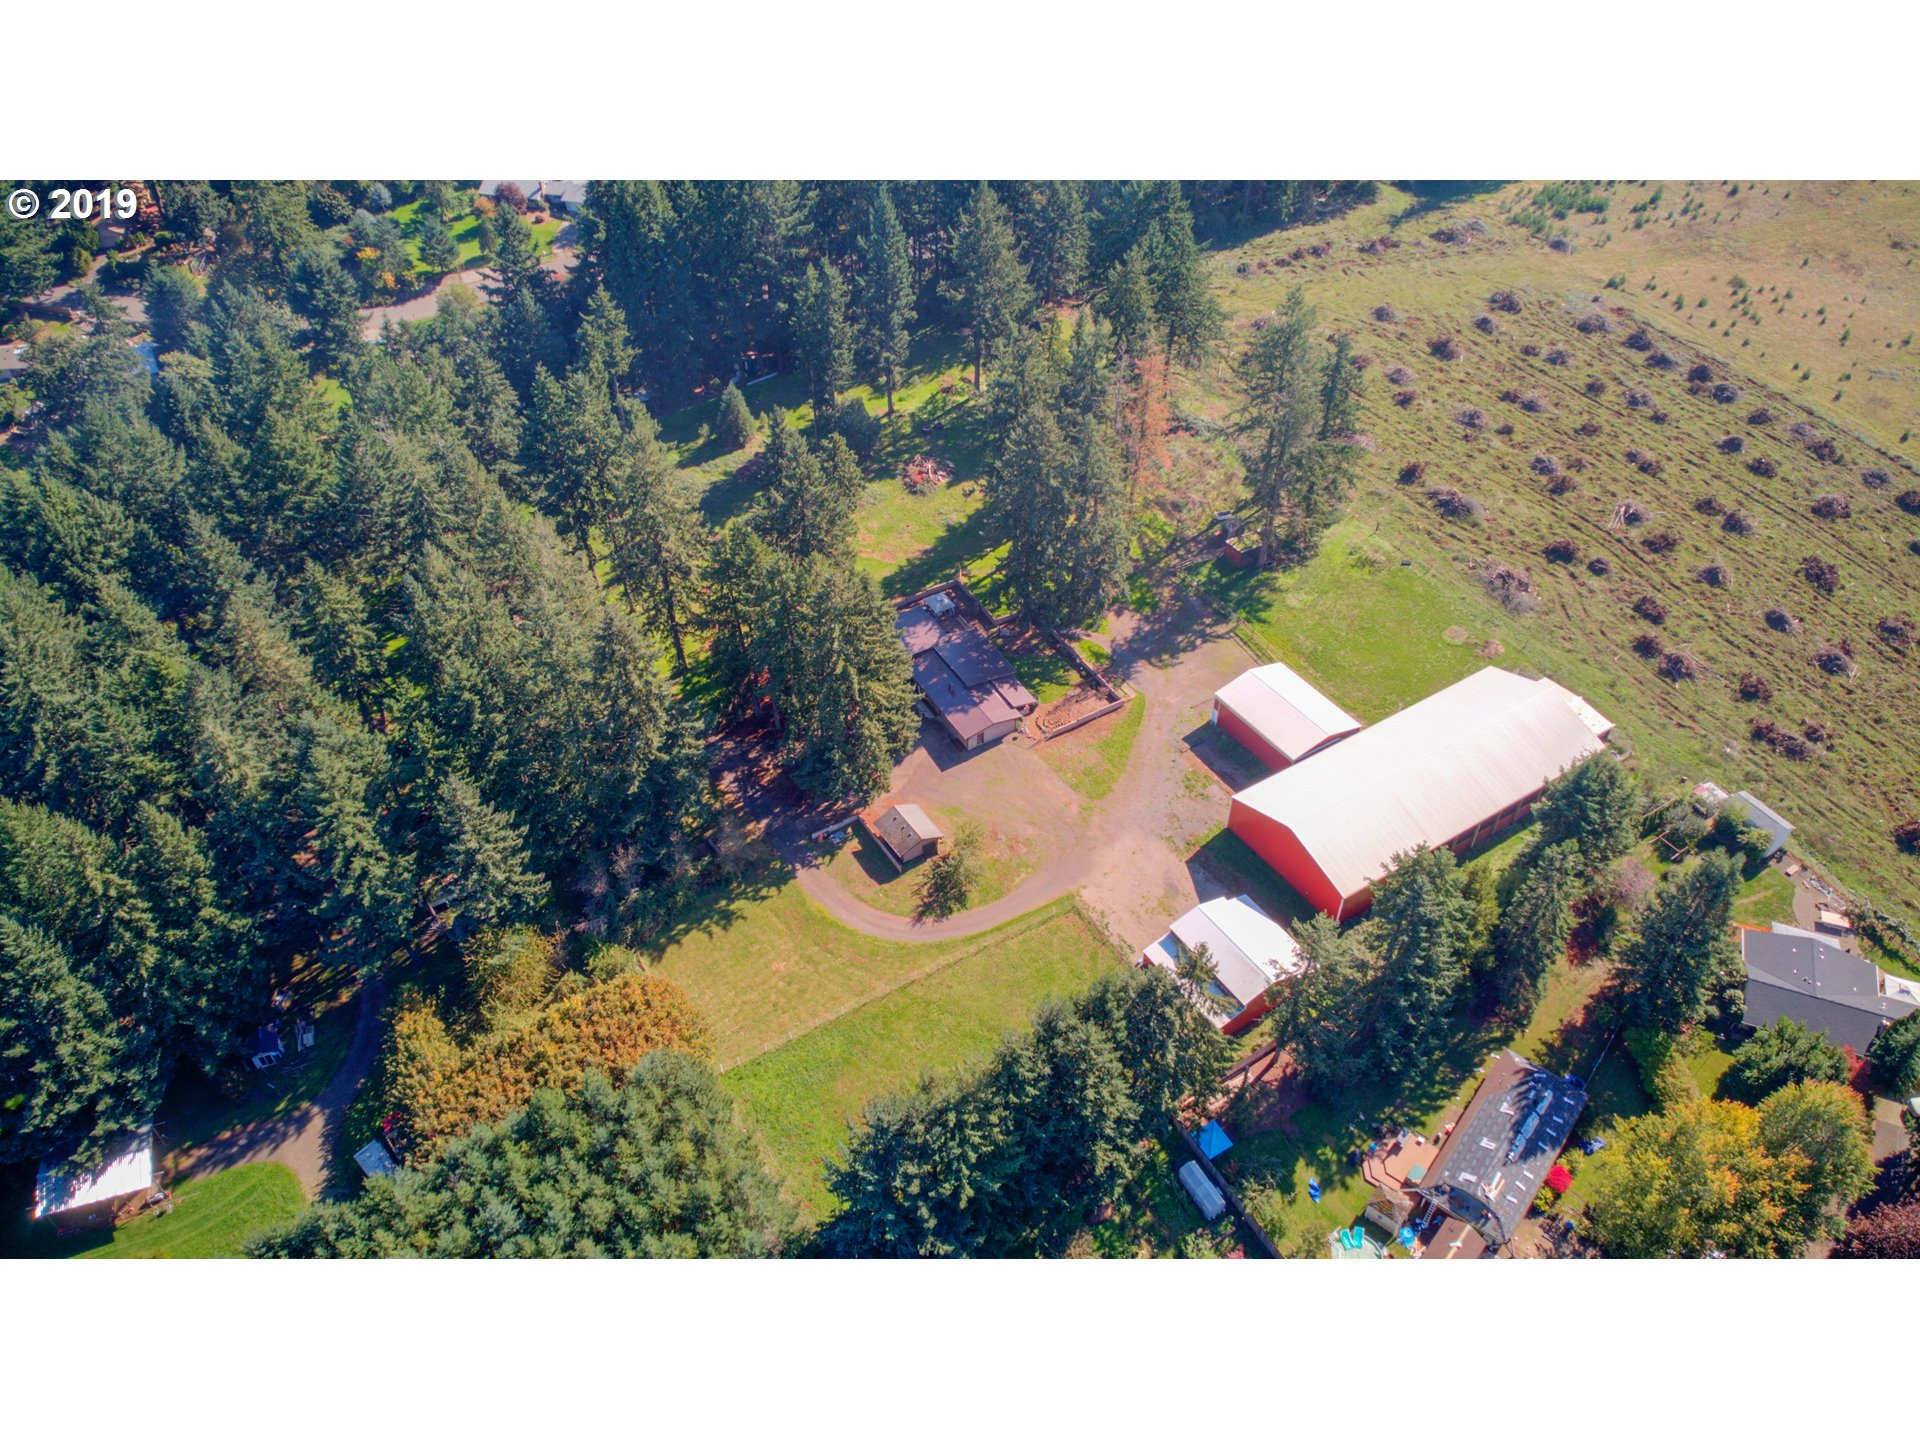 Hidden Private Equestrian Estate! Featuring a lovely country home with 3 beds, 2.5 baths,  open, vaulted, expansive rooms, & fresh interior paint. A 2006 built 60x144 indoor equestrian arena w/ viewing room, 2004 built barn w/ 11 horse stalls w/ income potential of $450/mo per stall, detached bonus building, new 40x48 outbuilding w/ RV hkp & covered storage. New $25k Metal Roof on home. Dog training?Storage facility? Canby Schools!